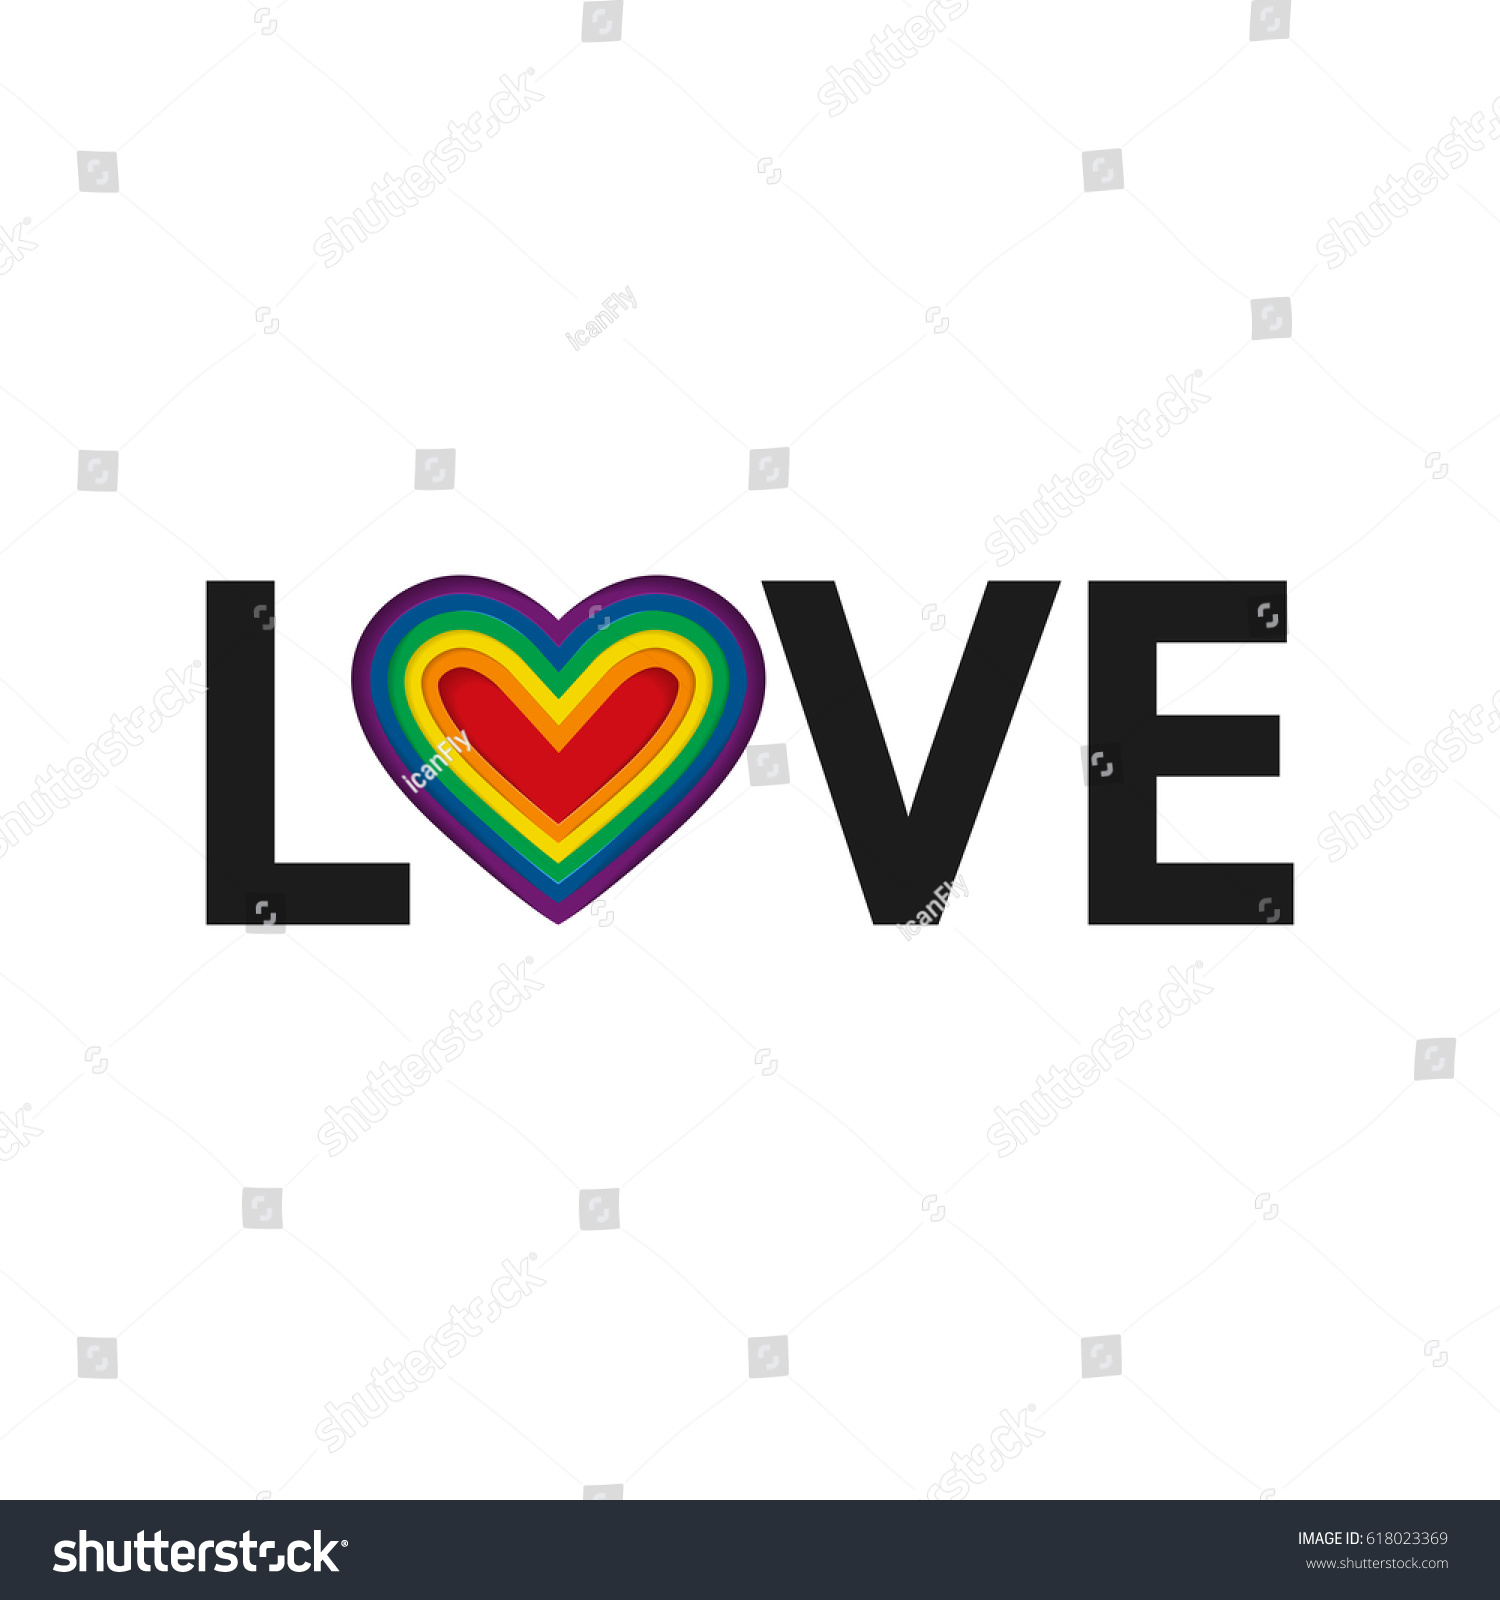 Love lgbt rainbow heart vector illustration stock vector 618023369 love lgbt rainbow heart vector illustration eps10 lgbt pride flag in vector altavistaventures Image collections